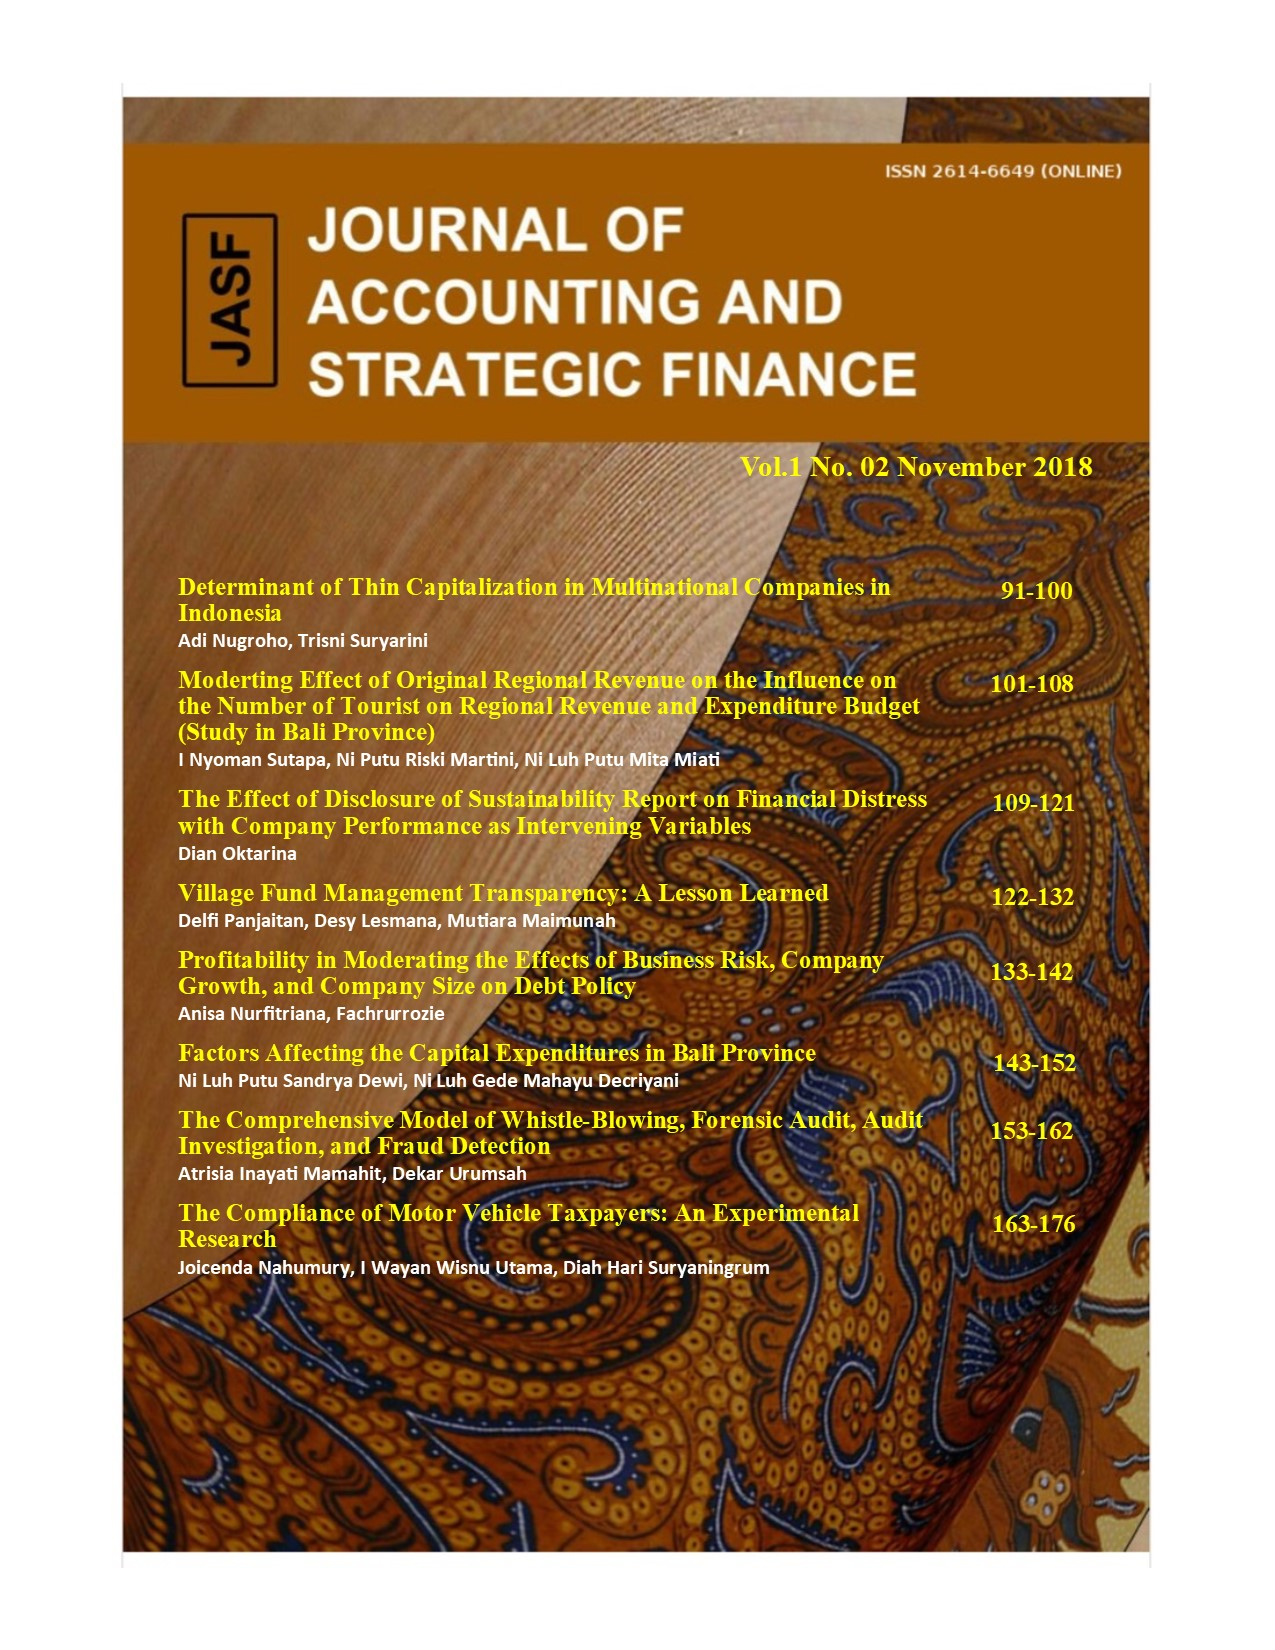 Vol 1 No 2 (2018): Journal of Accounting and Strategic